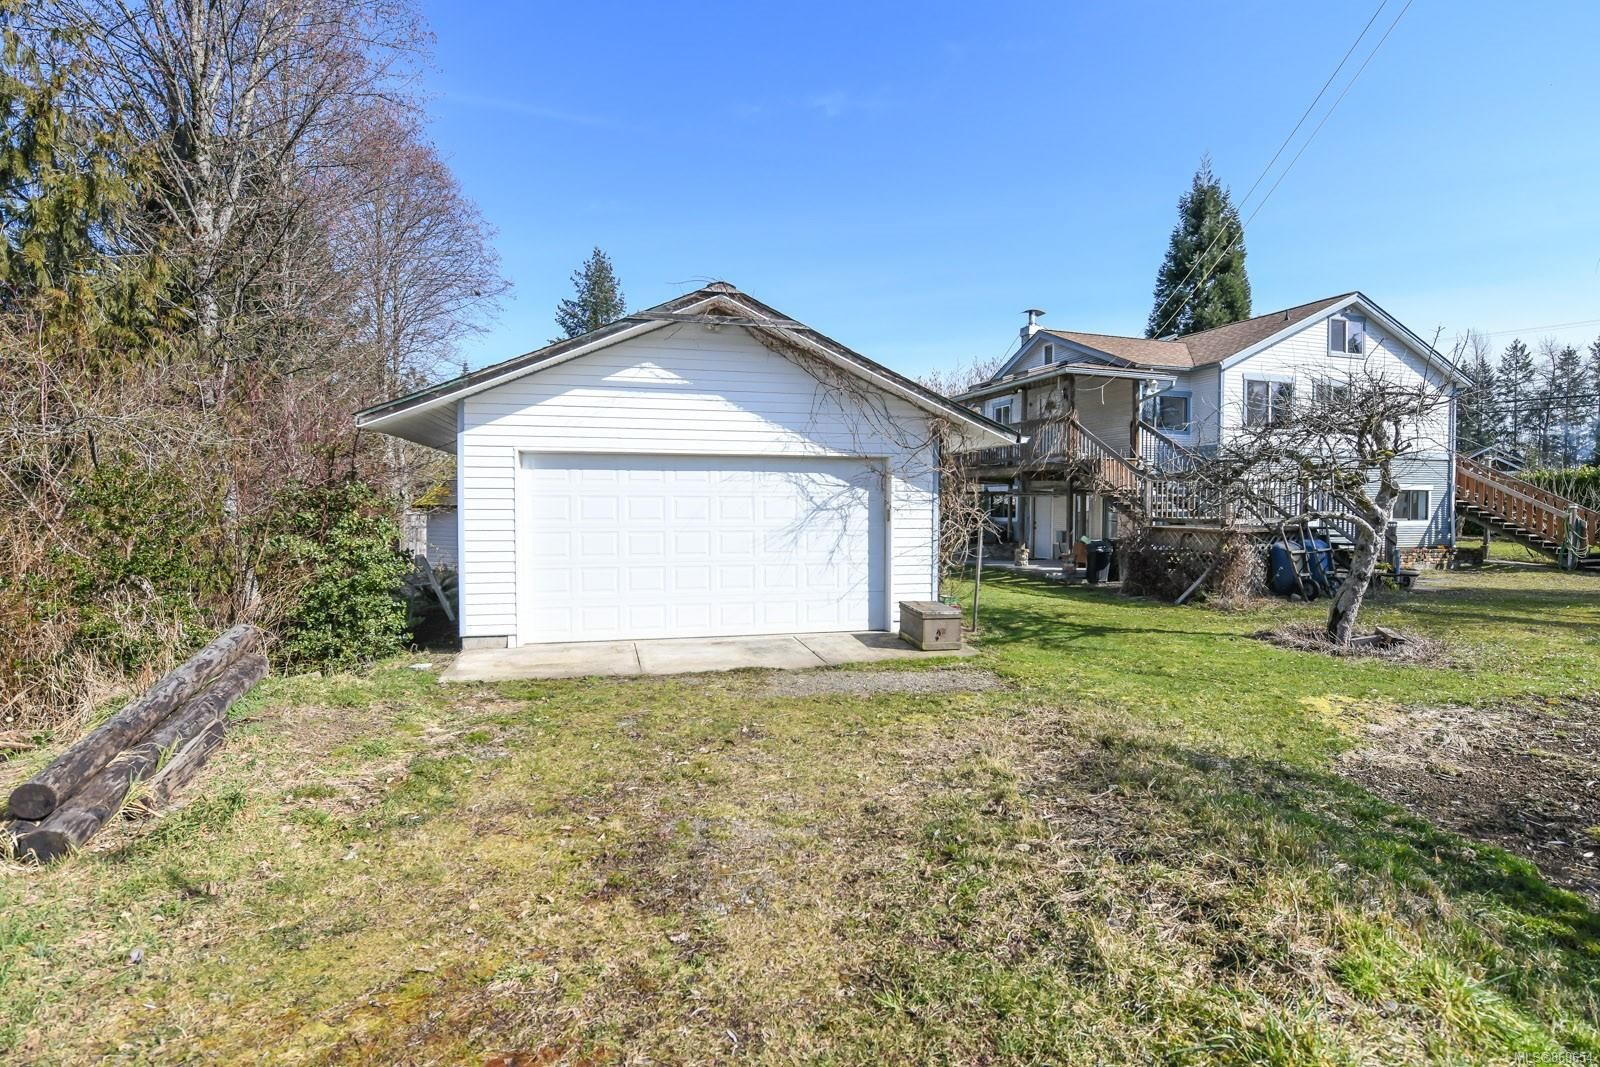 Photo 26: Photos: 4712 Cumberland Rd in : CV Cumberland House for sale (Comox Valley)  : MLS®# 869654